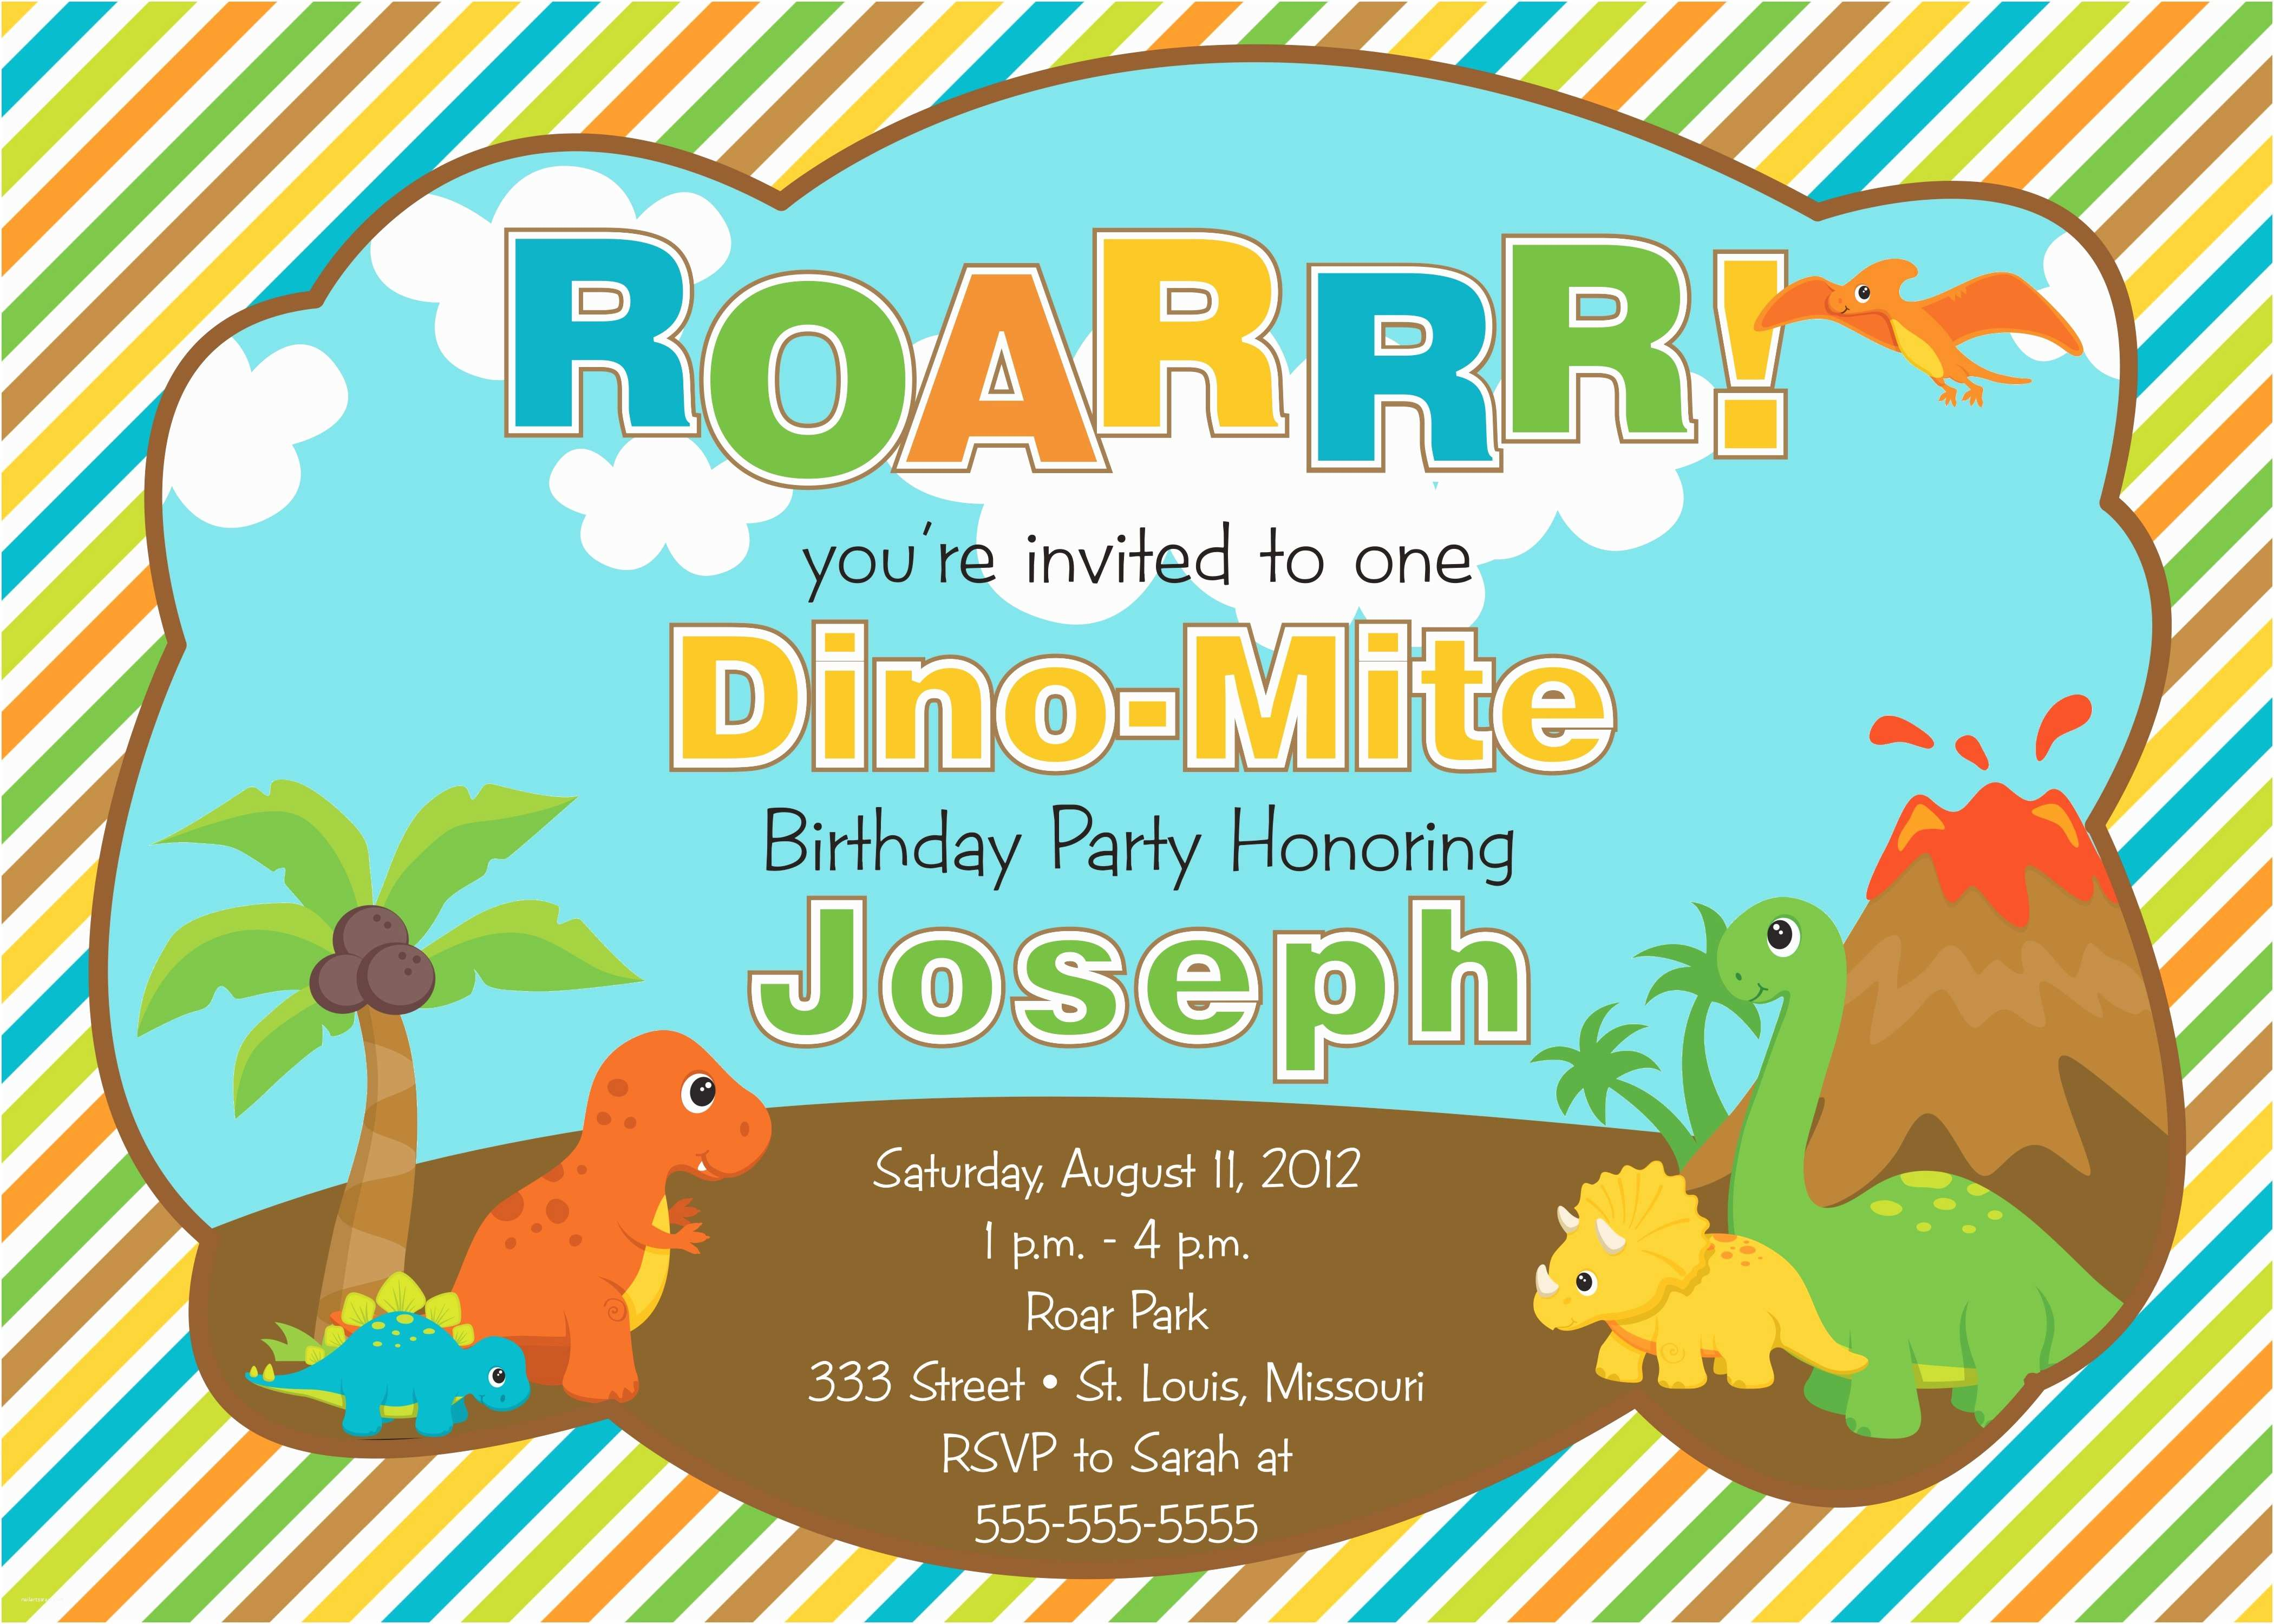 Dinosaur Birthday Invitations Invitations for Every Occassion